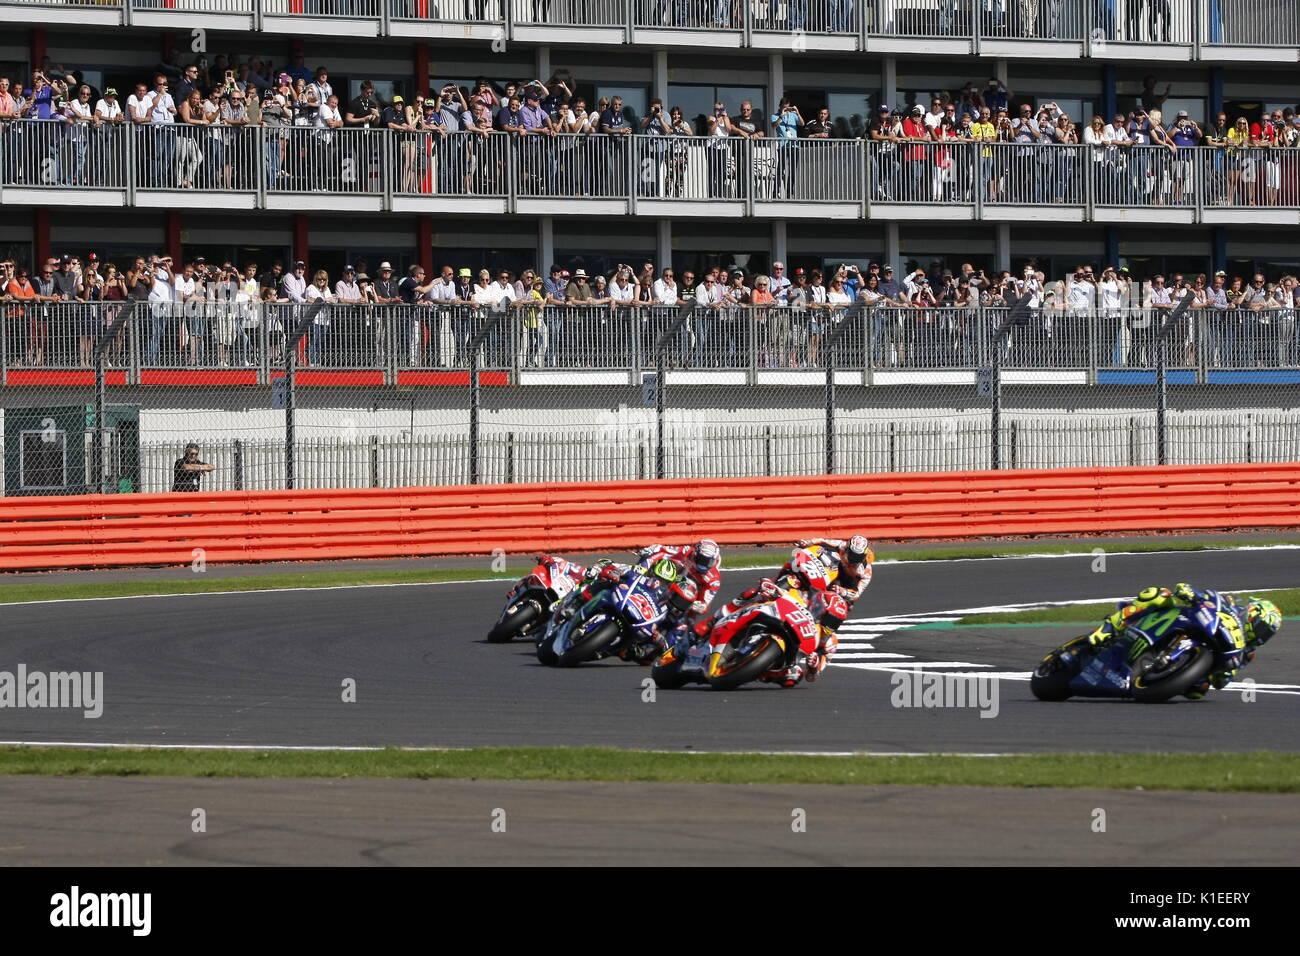 Silverstone, UK. 27th Aug, 2017.  1st lap of the OCTO British MotoGP in front of a large crowd Rossi leads from Marquez, Vinales, Crutchlow and winner Dozizisio Credit: Motofoto/Alamy Live News - Stock Image